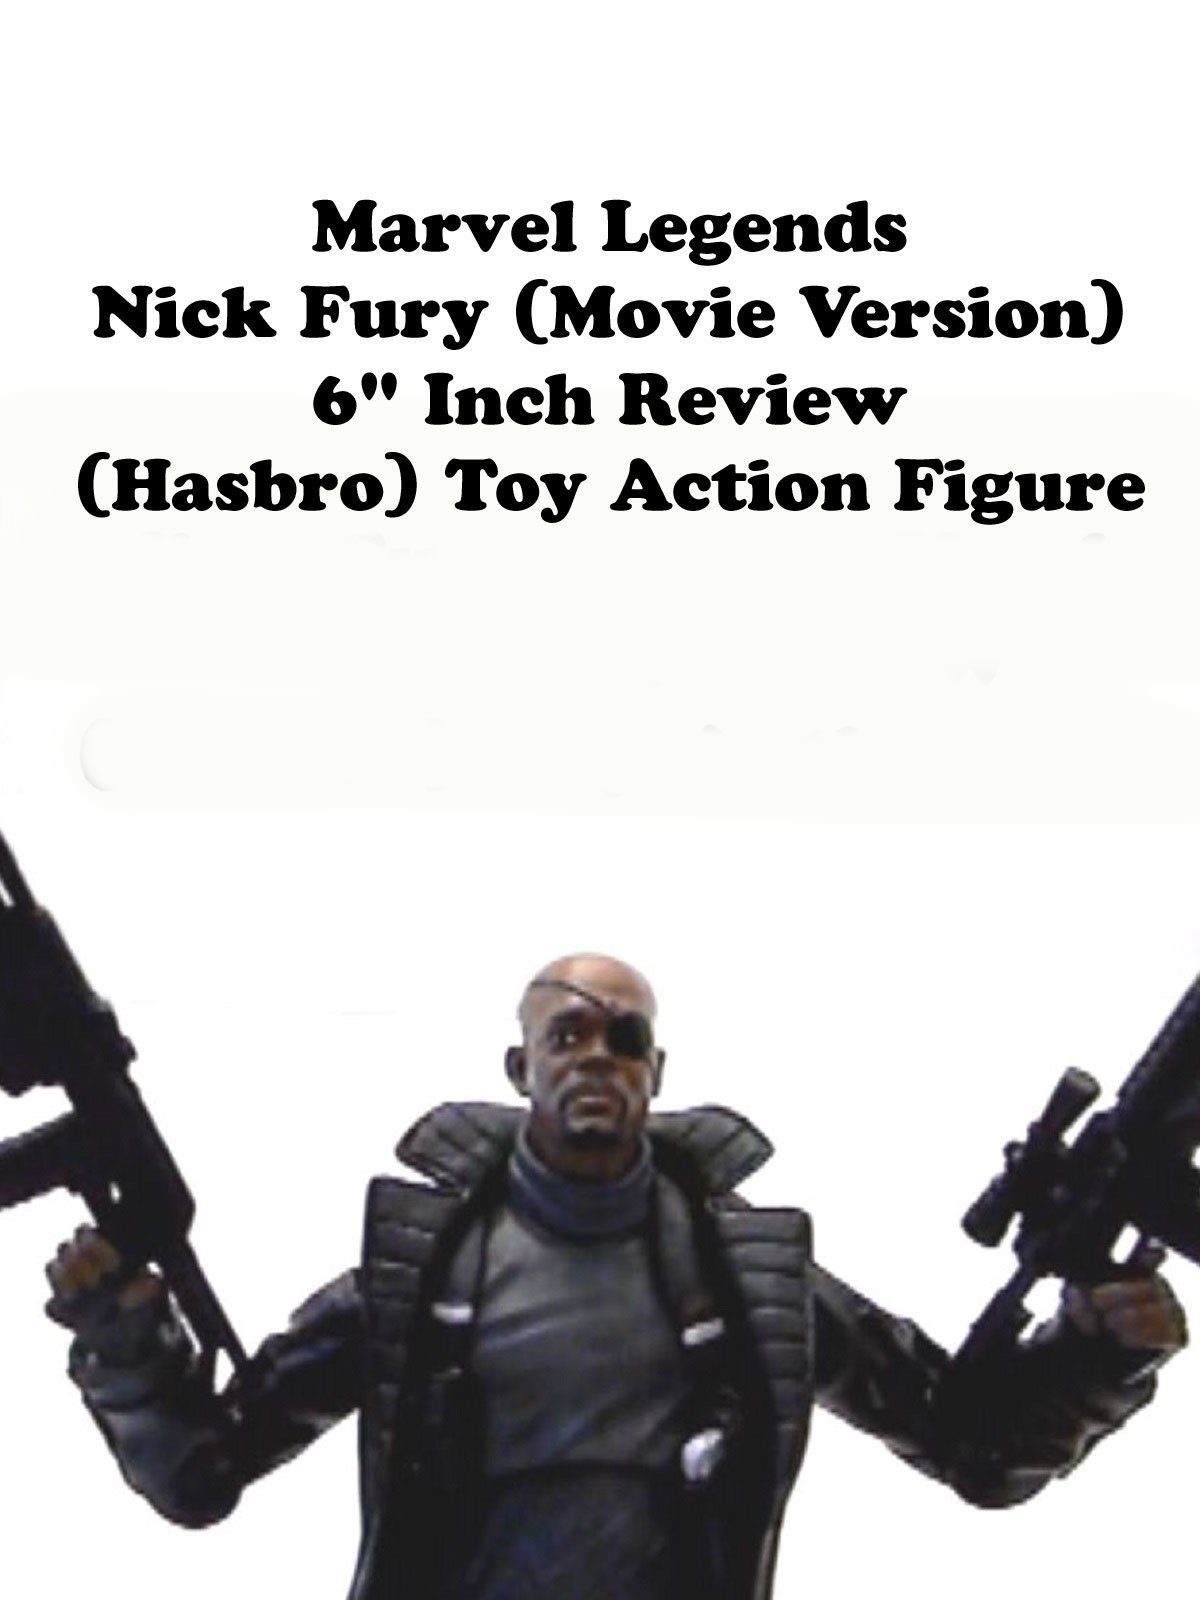 "Review: Marvel Legends Nick Fury (Movie Version) 6"" Inch Review (Hasbro) Toy Action Figure"